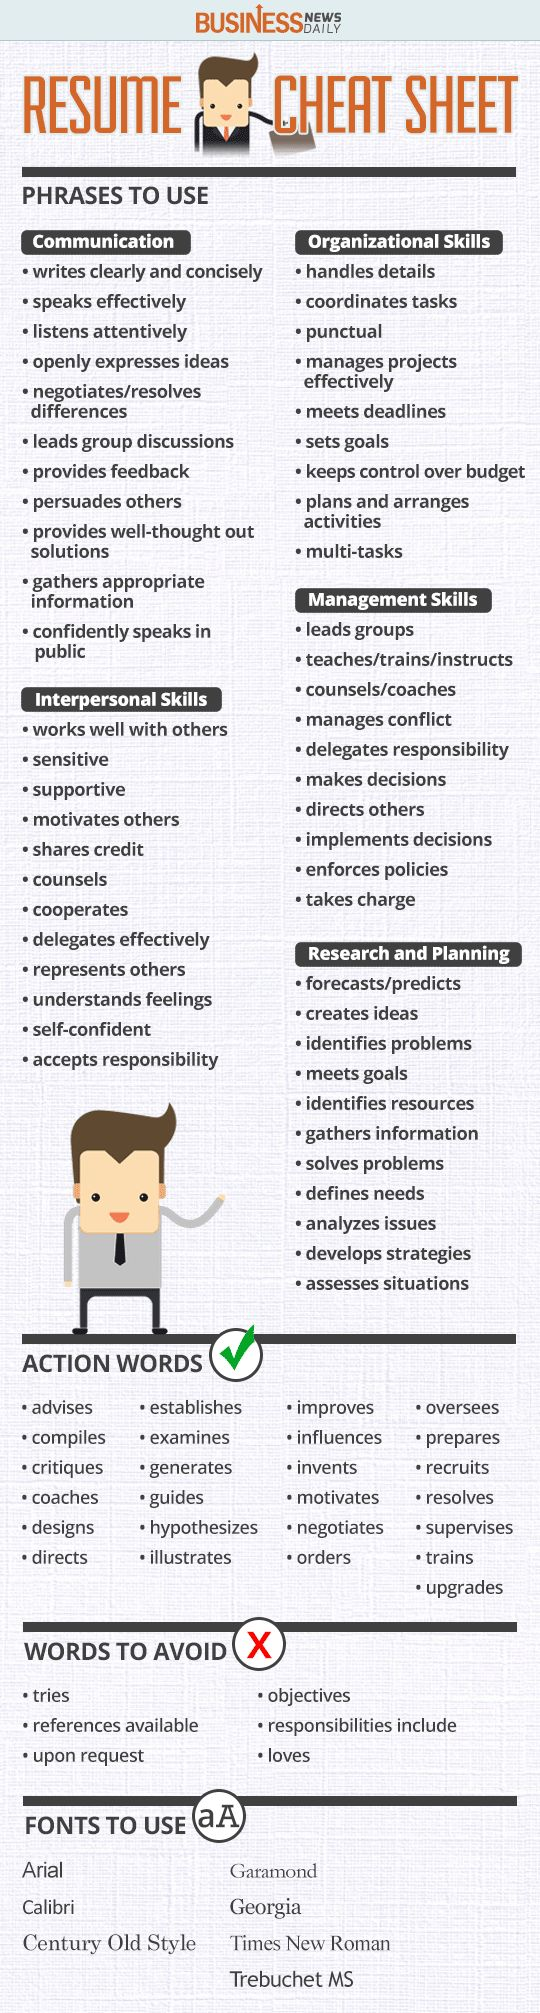 resume cheat sheet coolguides perfectionist synonym for 3inunvy junior cyber security Resume Perfectionist Synonym For Resume